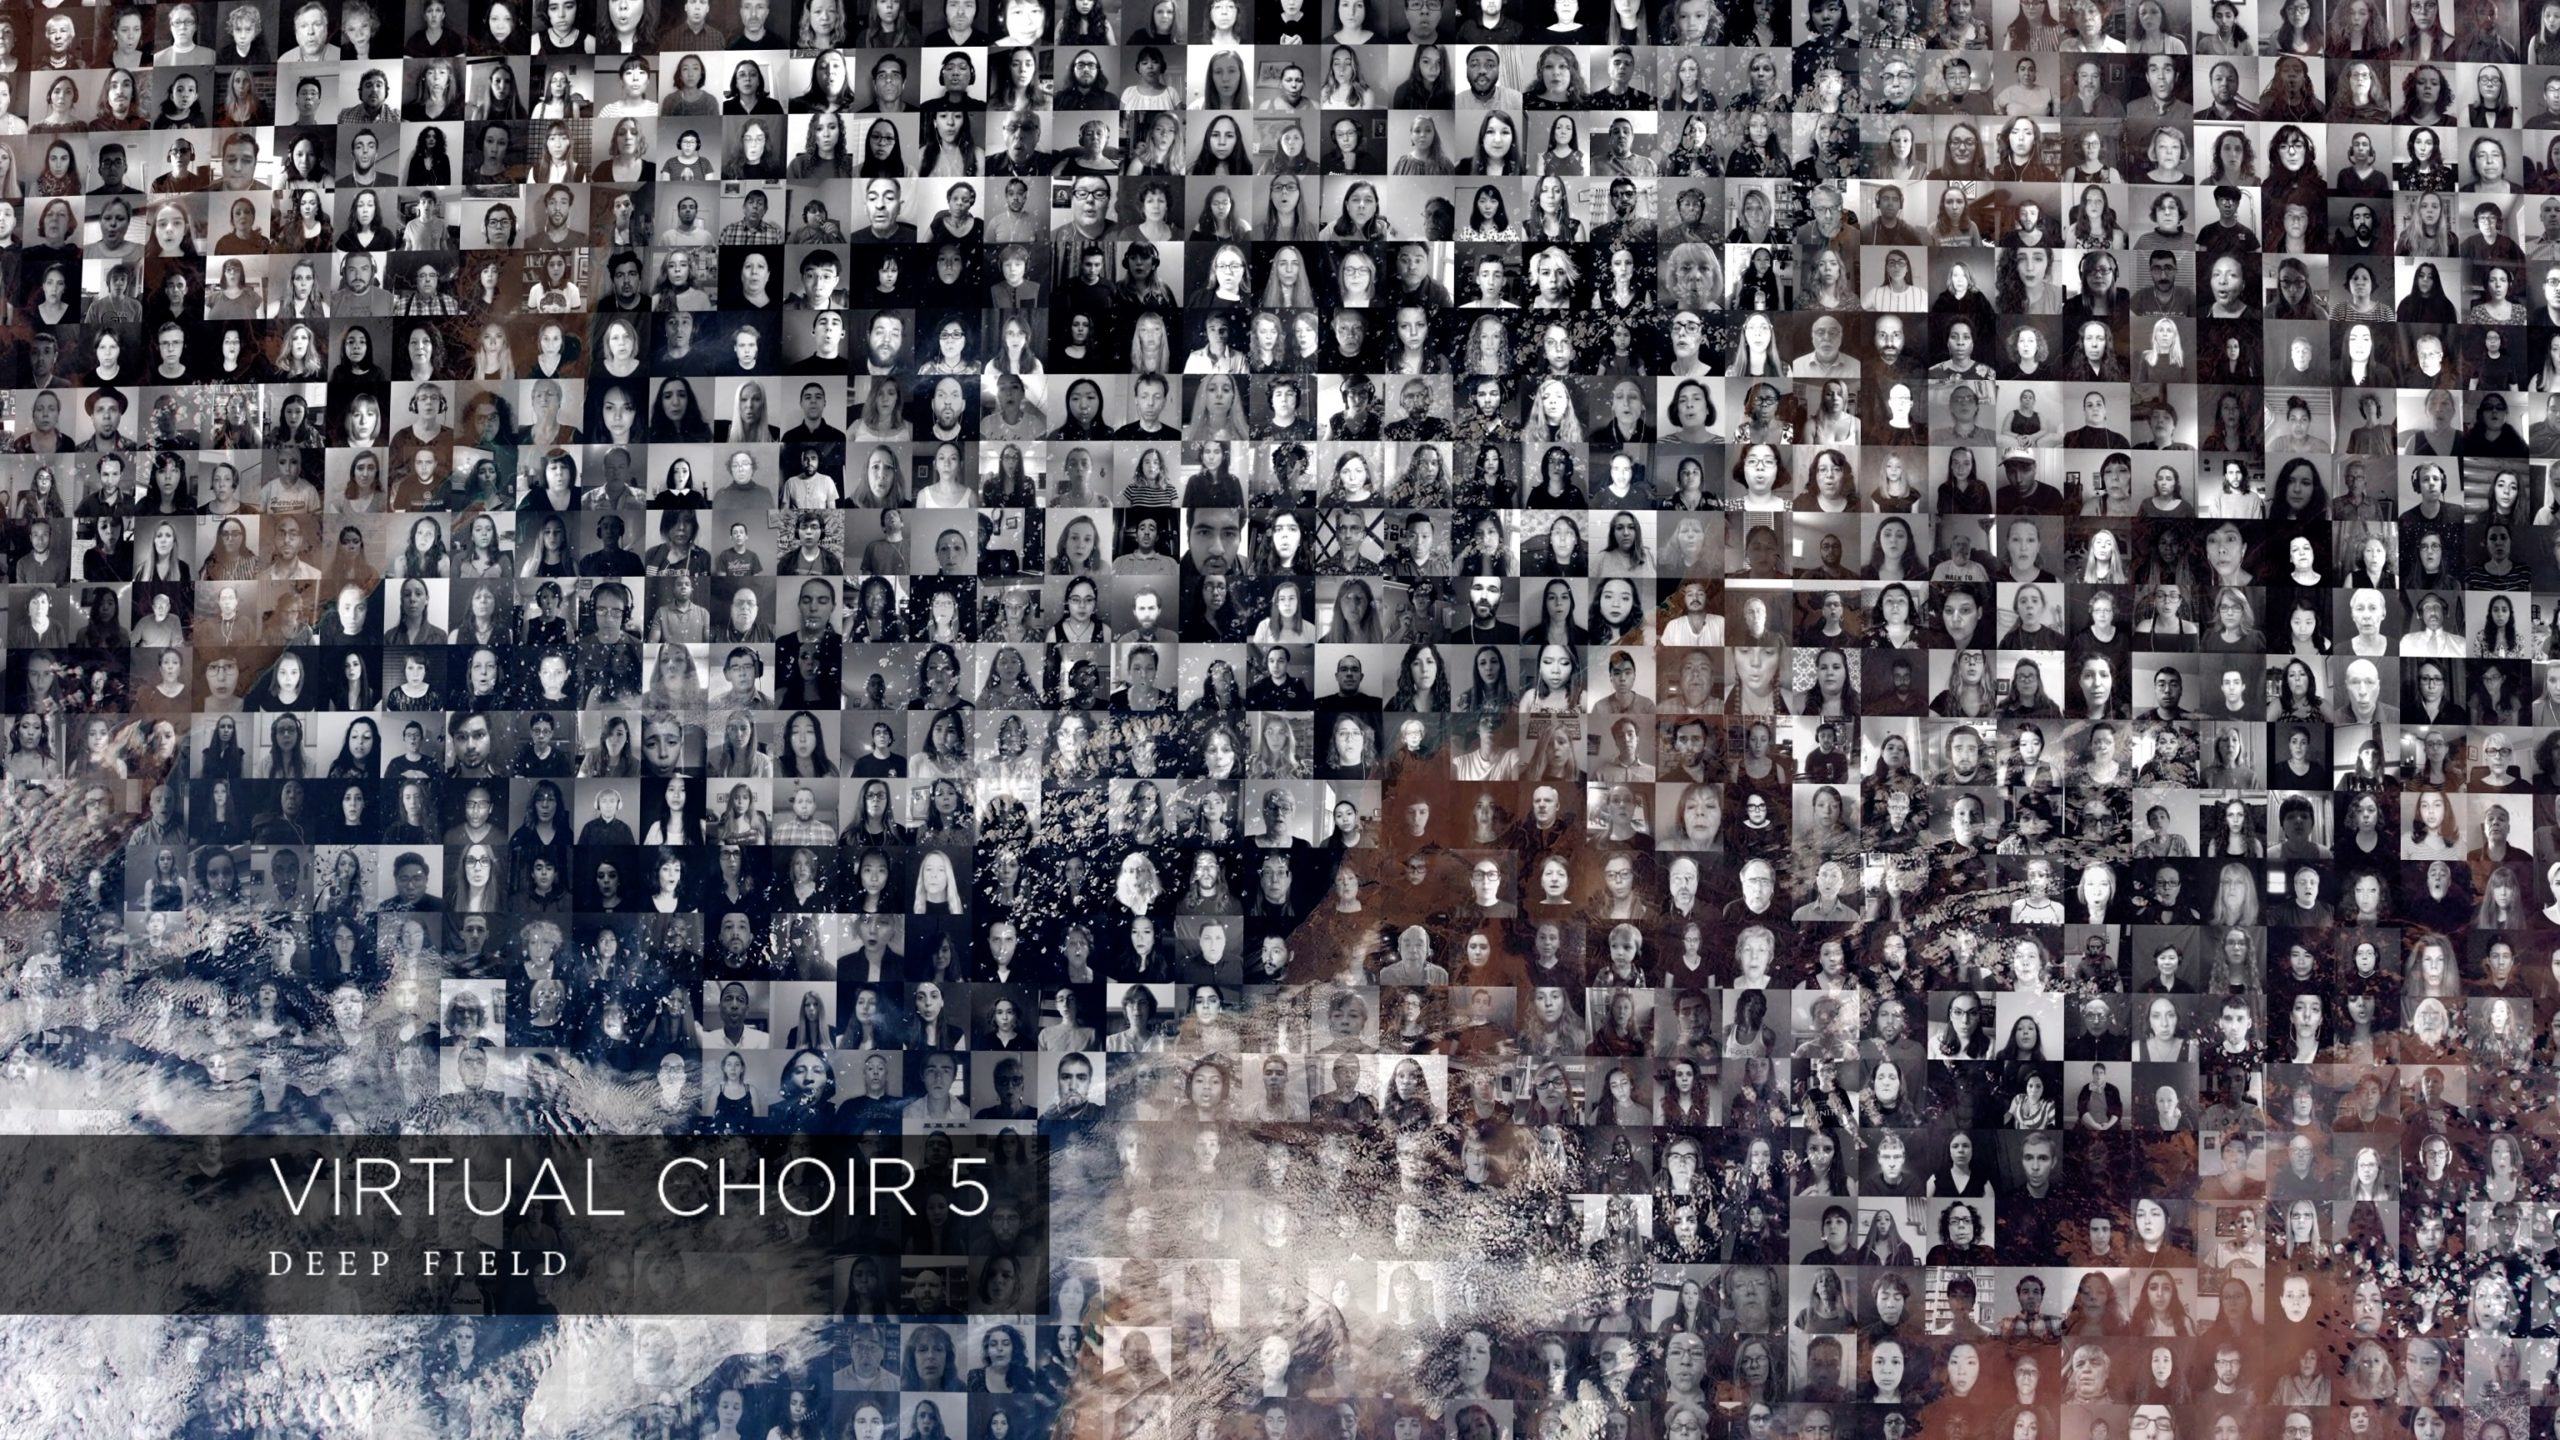 The videos of singers participating in Virtual Choir 5